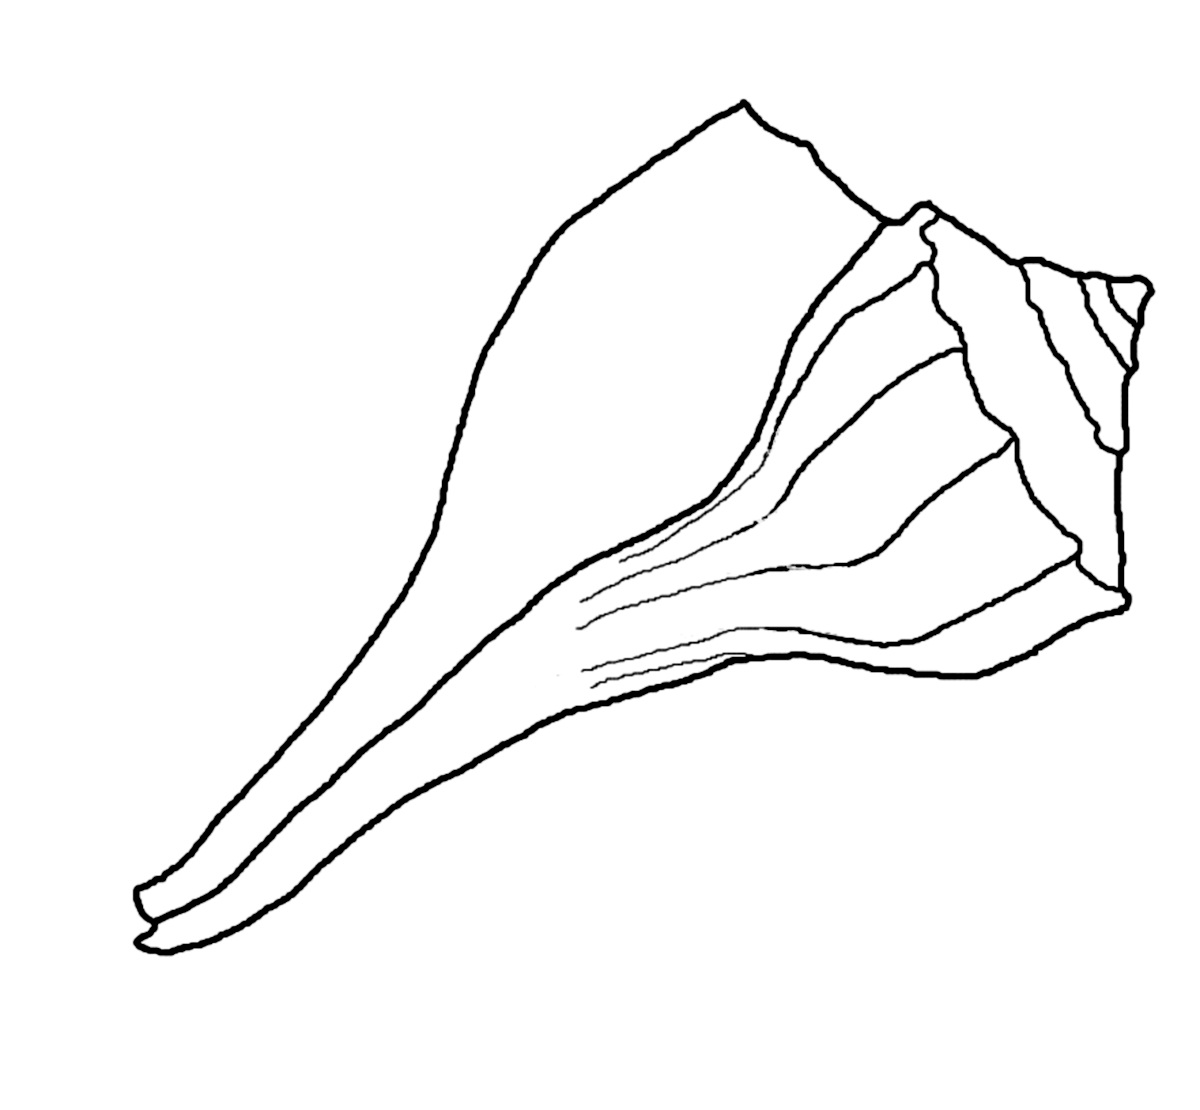 seashell coloring pages to print | Free Printable Seashell Coloring Pages For Kids